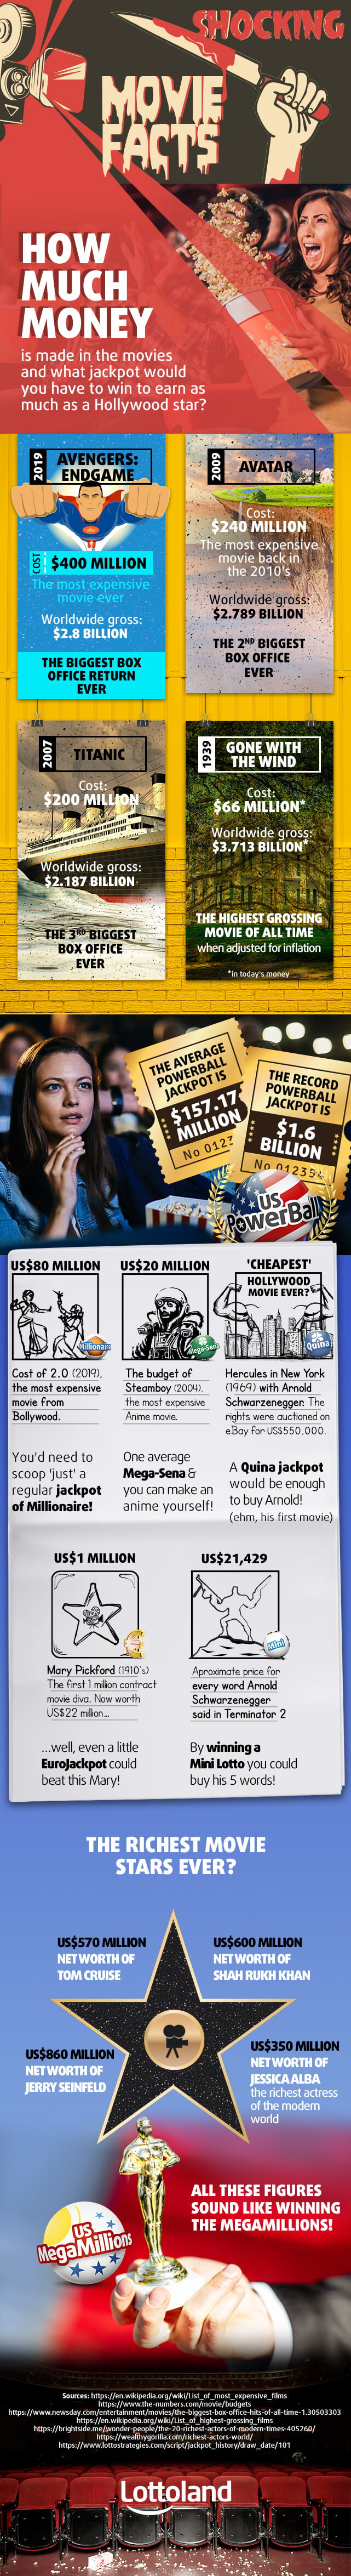 Infographic about the richest actors and most expensive movies